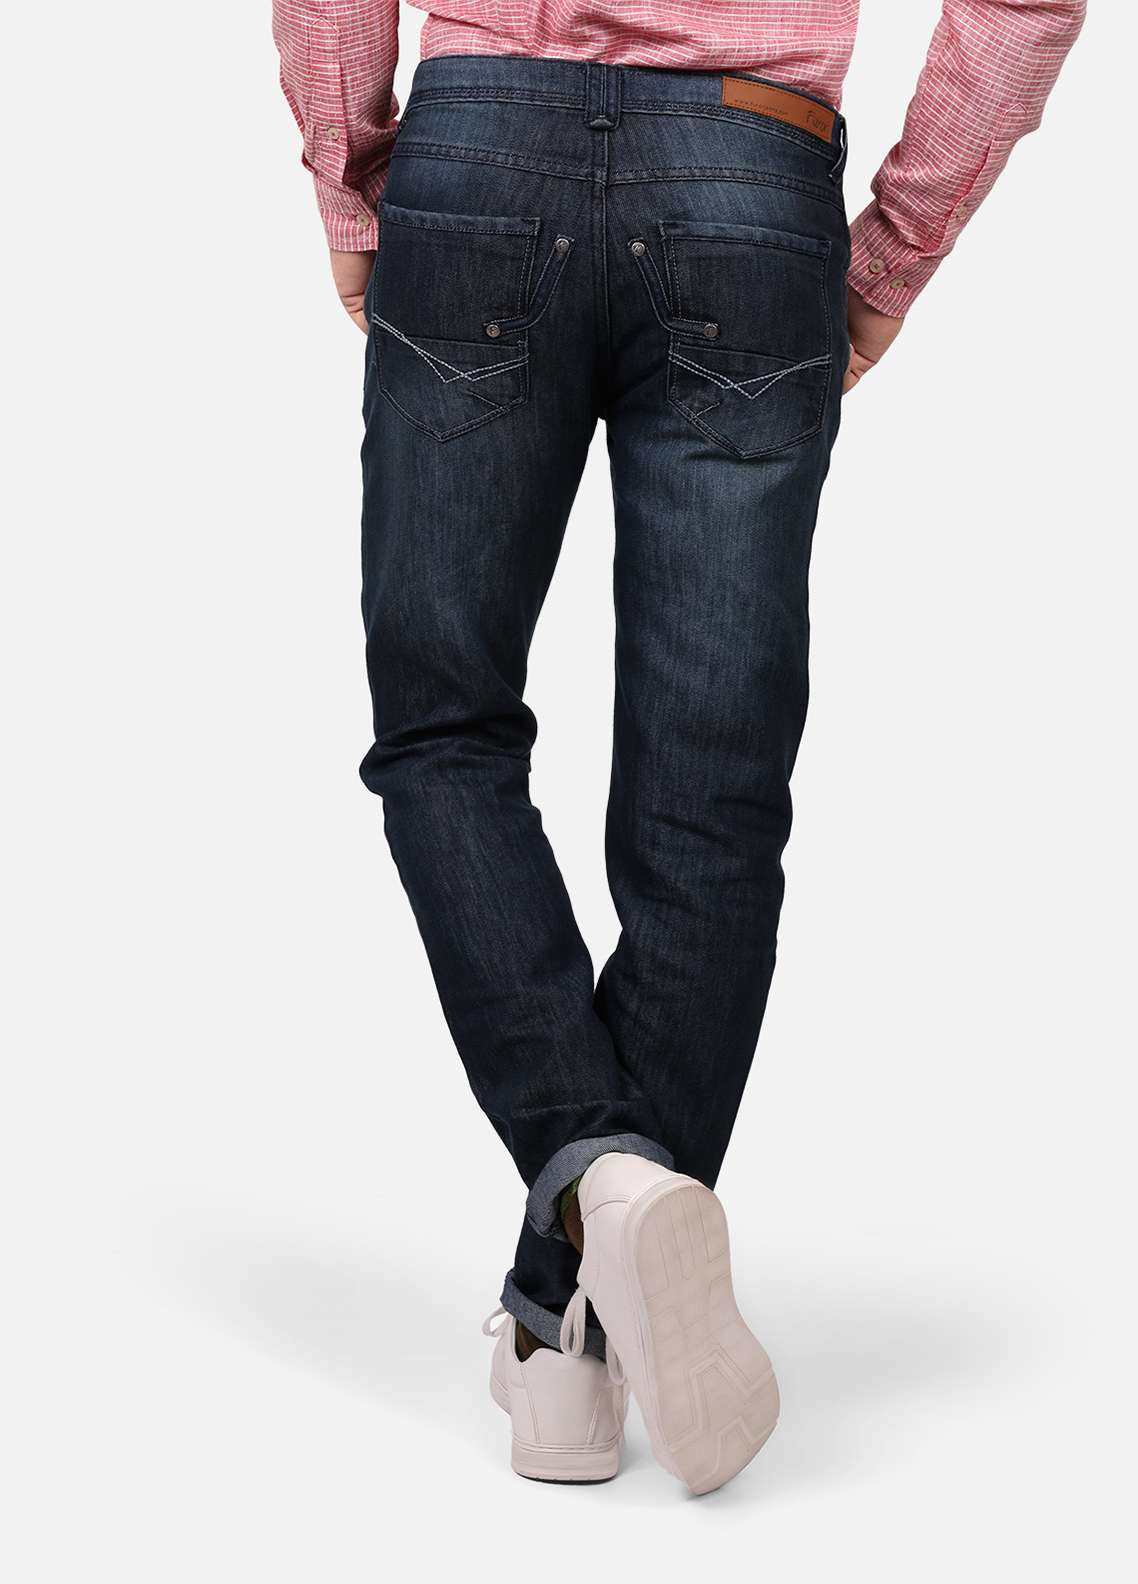 Furor Denim Casual Men Jeans - Ash Blue FRM18DP 016